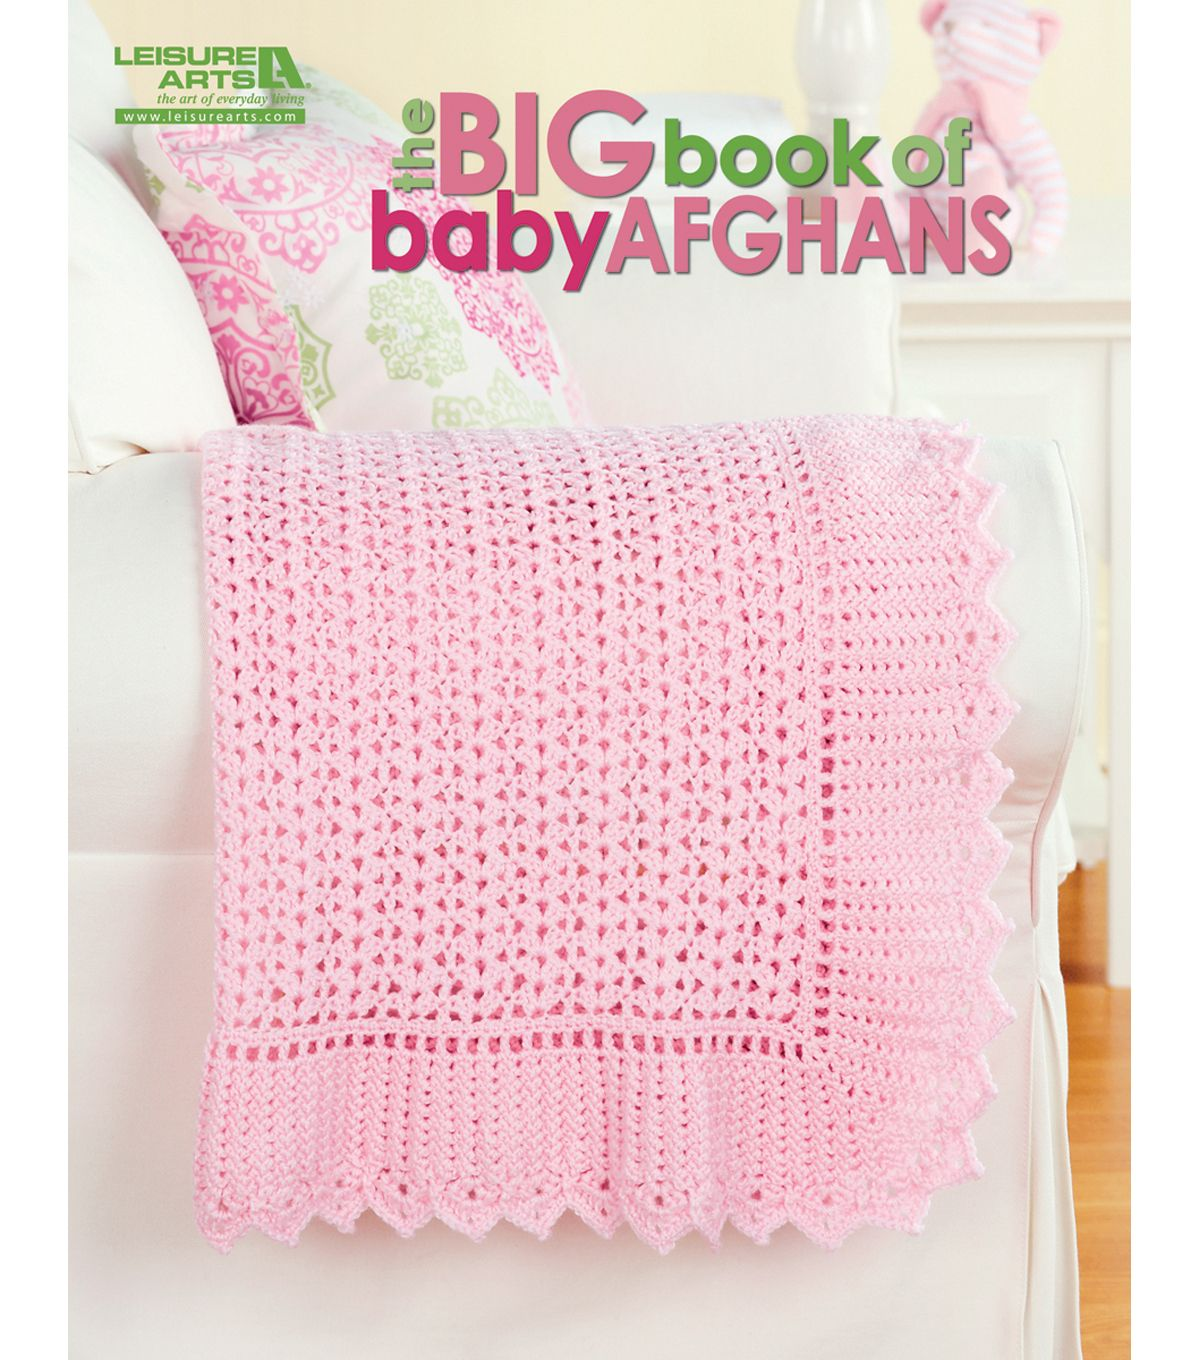 Leisure Arts The Big Book of Baby AfghansLeisure Arts The Big Book of Baby  Afghans,